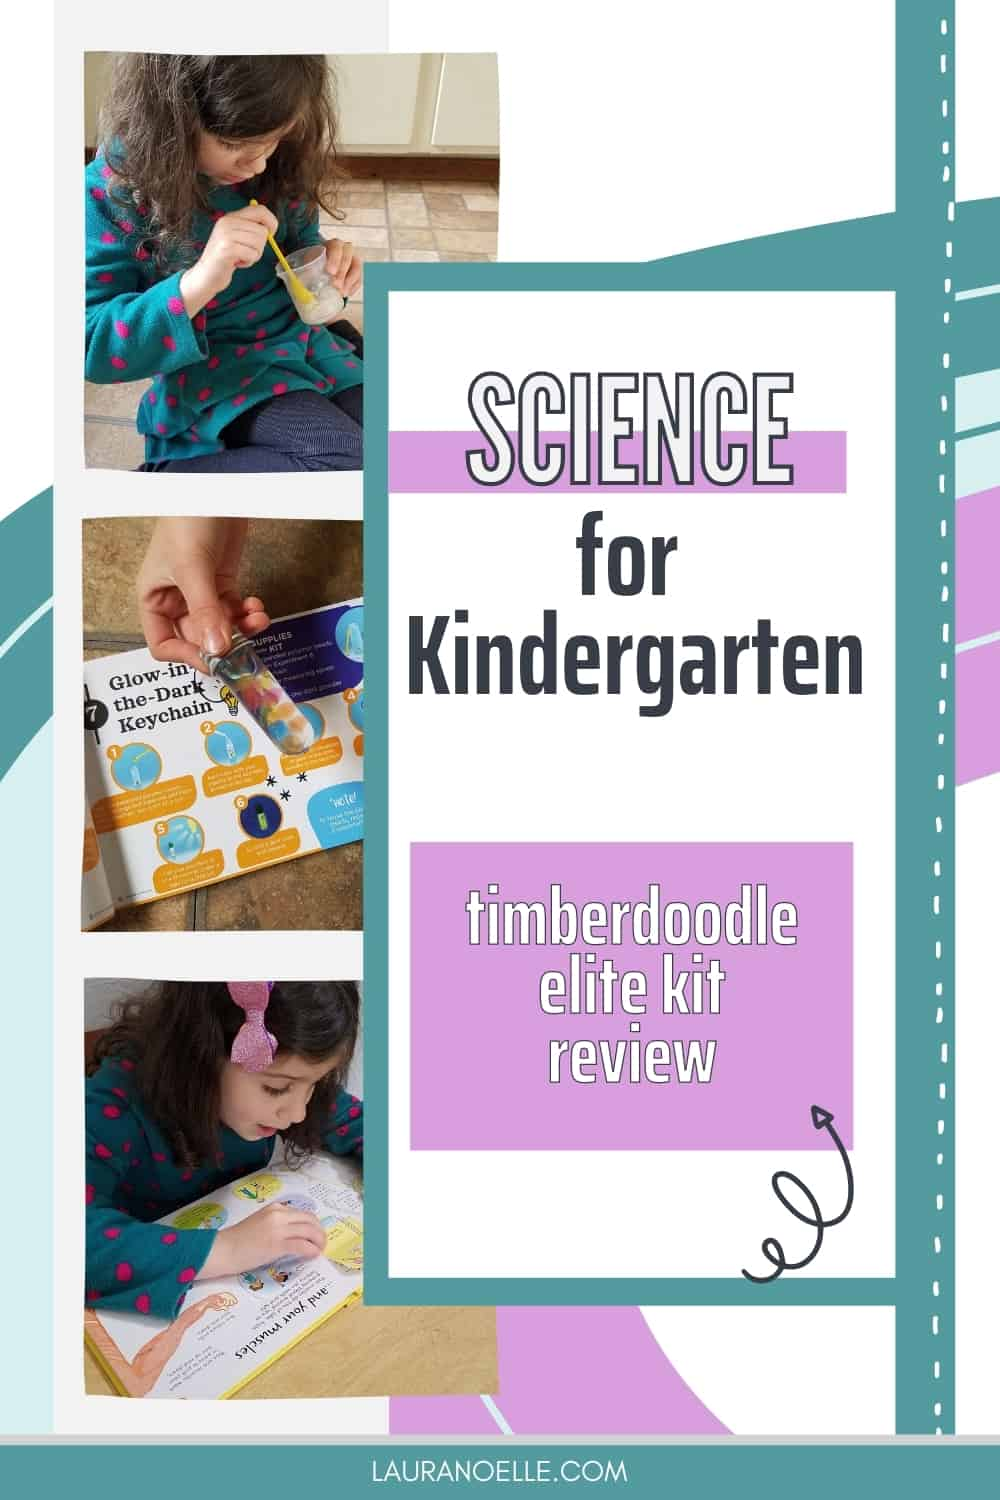 Science for little ones is hands-on with fun ways to learn the basics of life on earth. Here's what we think of Timberdoodle's Kindergarten science materials.